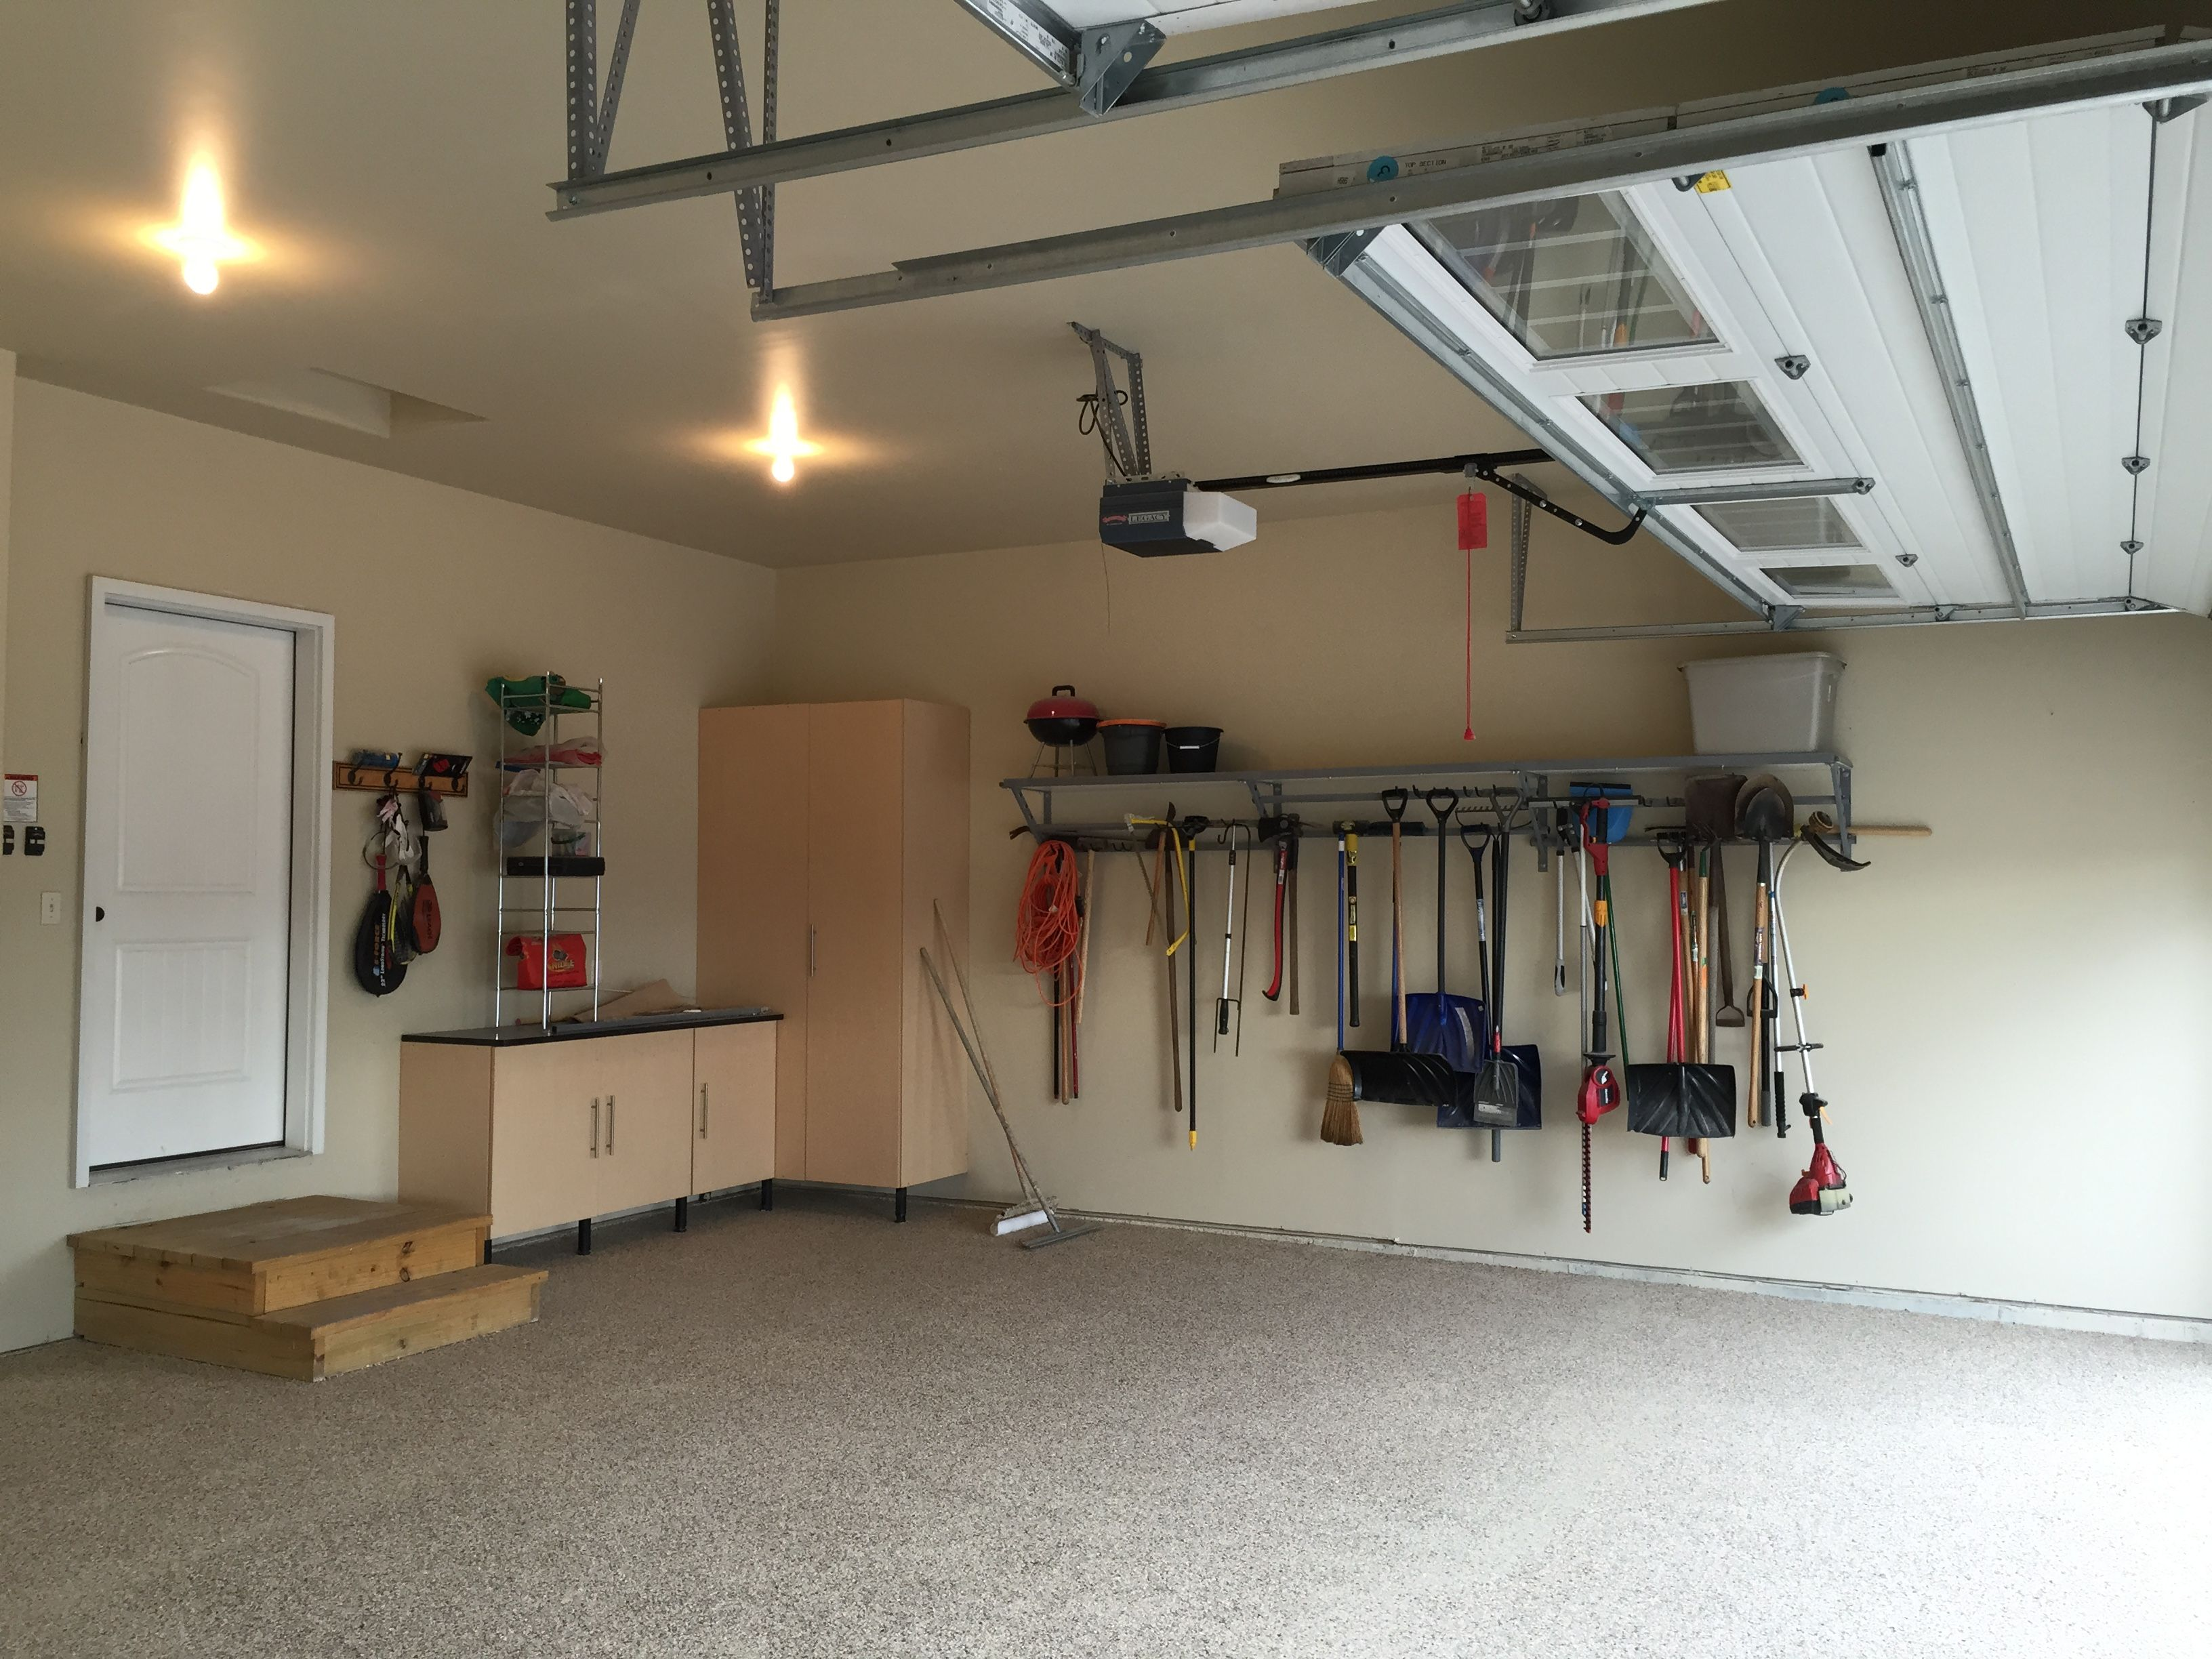 bars cabinets space monkey completely pin your elevate bar from storage can garage